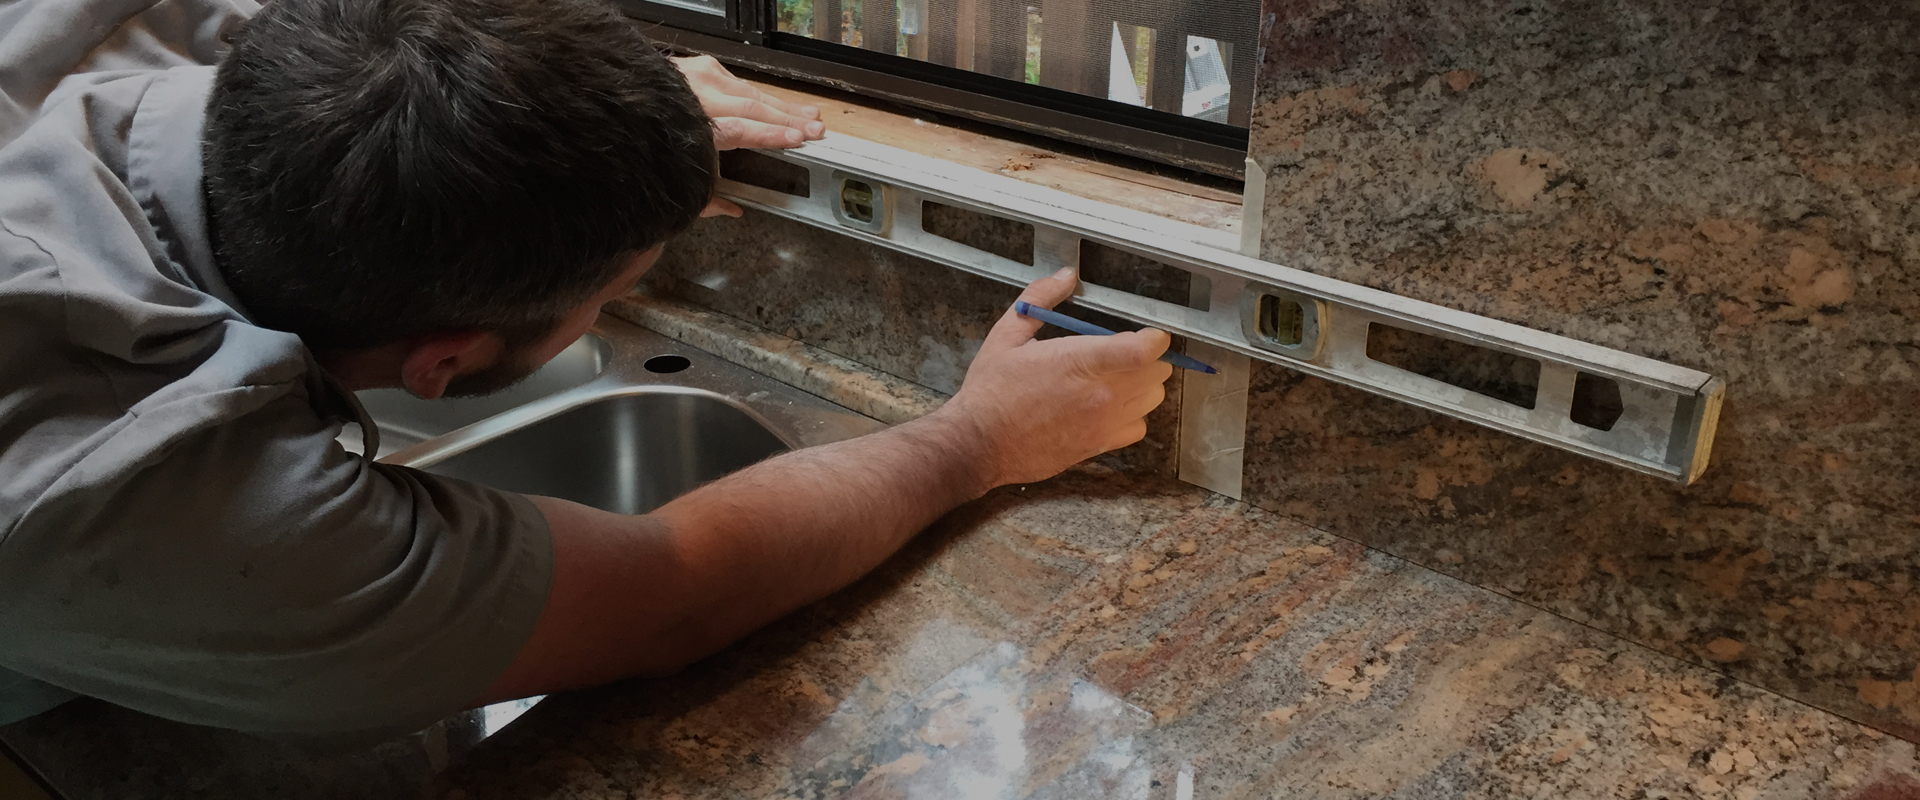 man meausring backsplash area behind sink